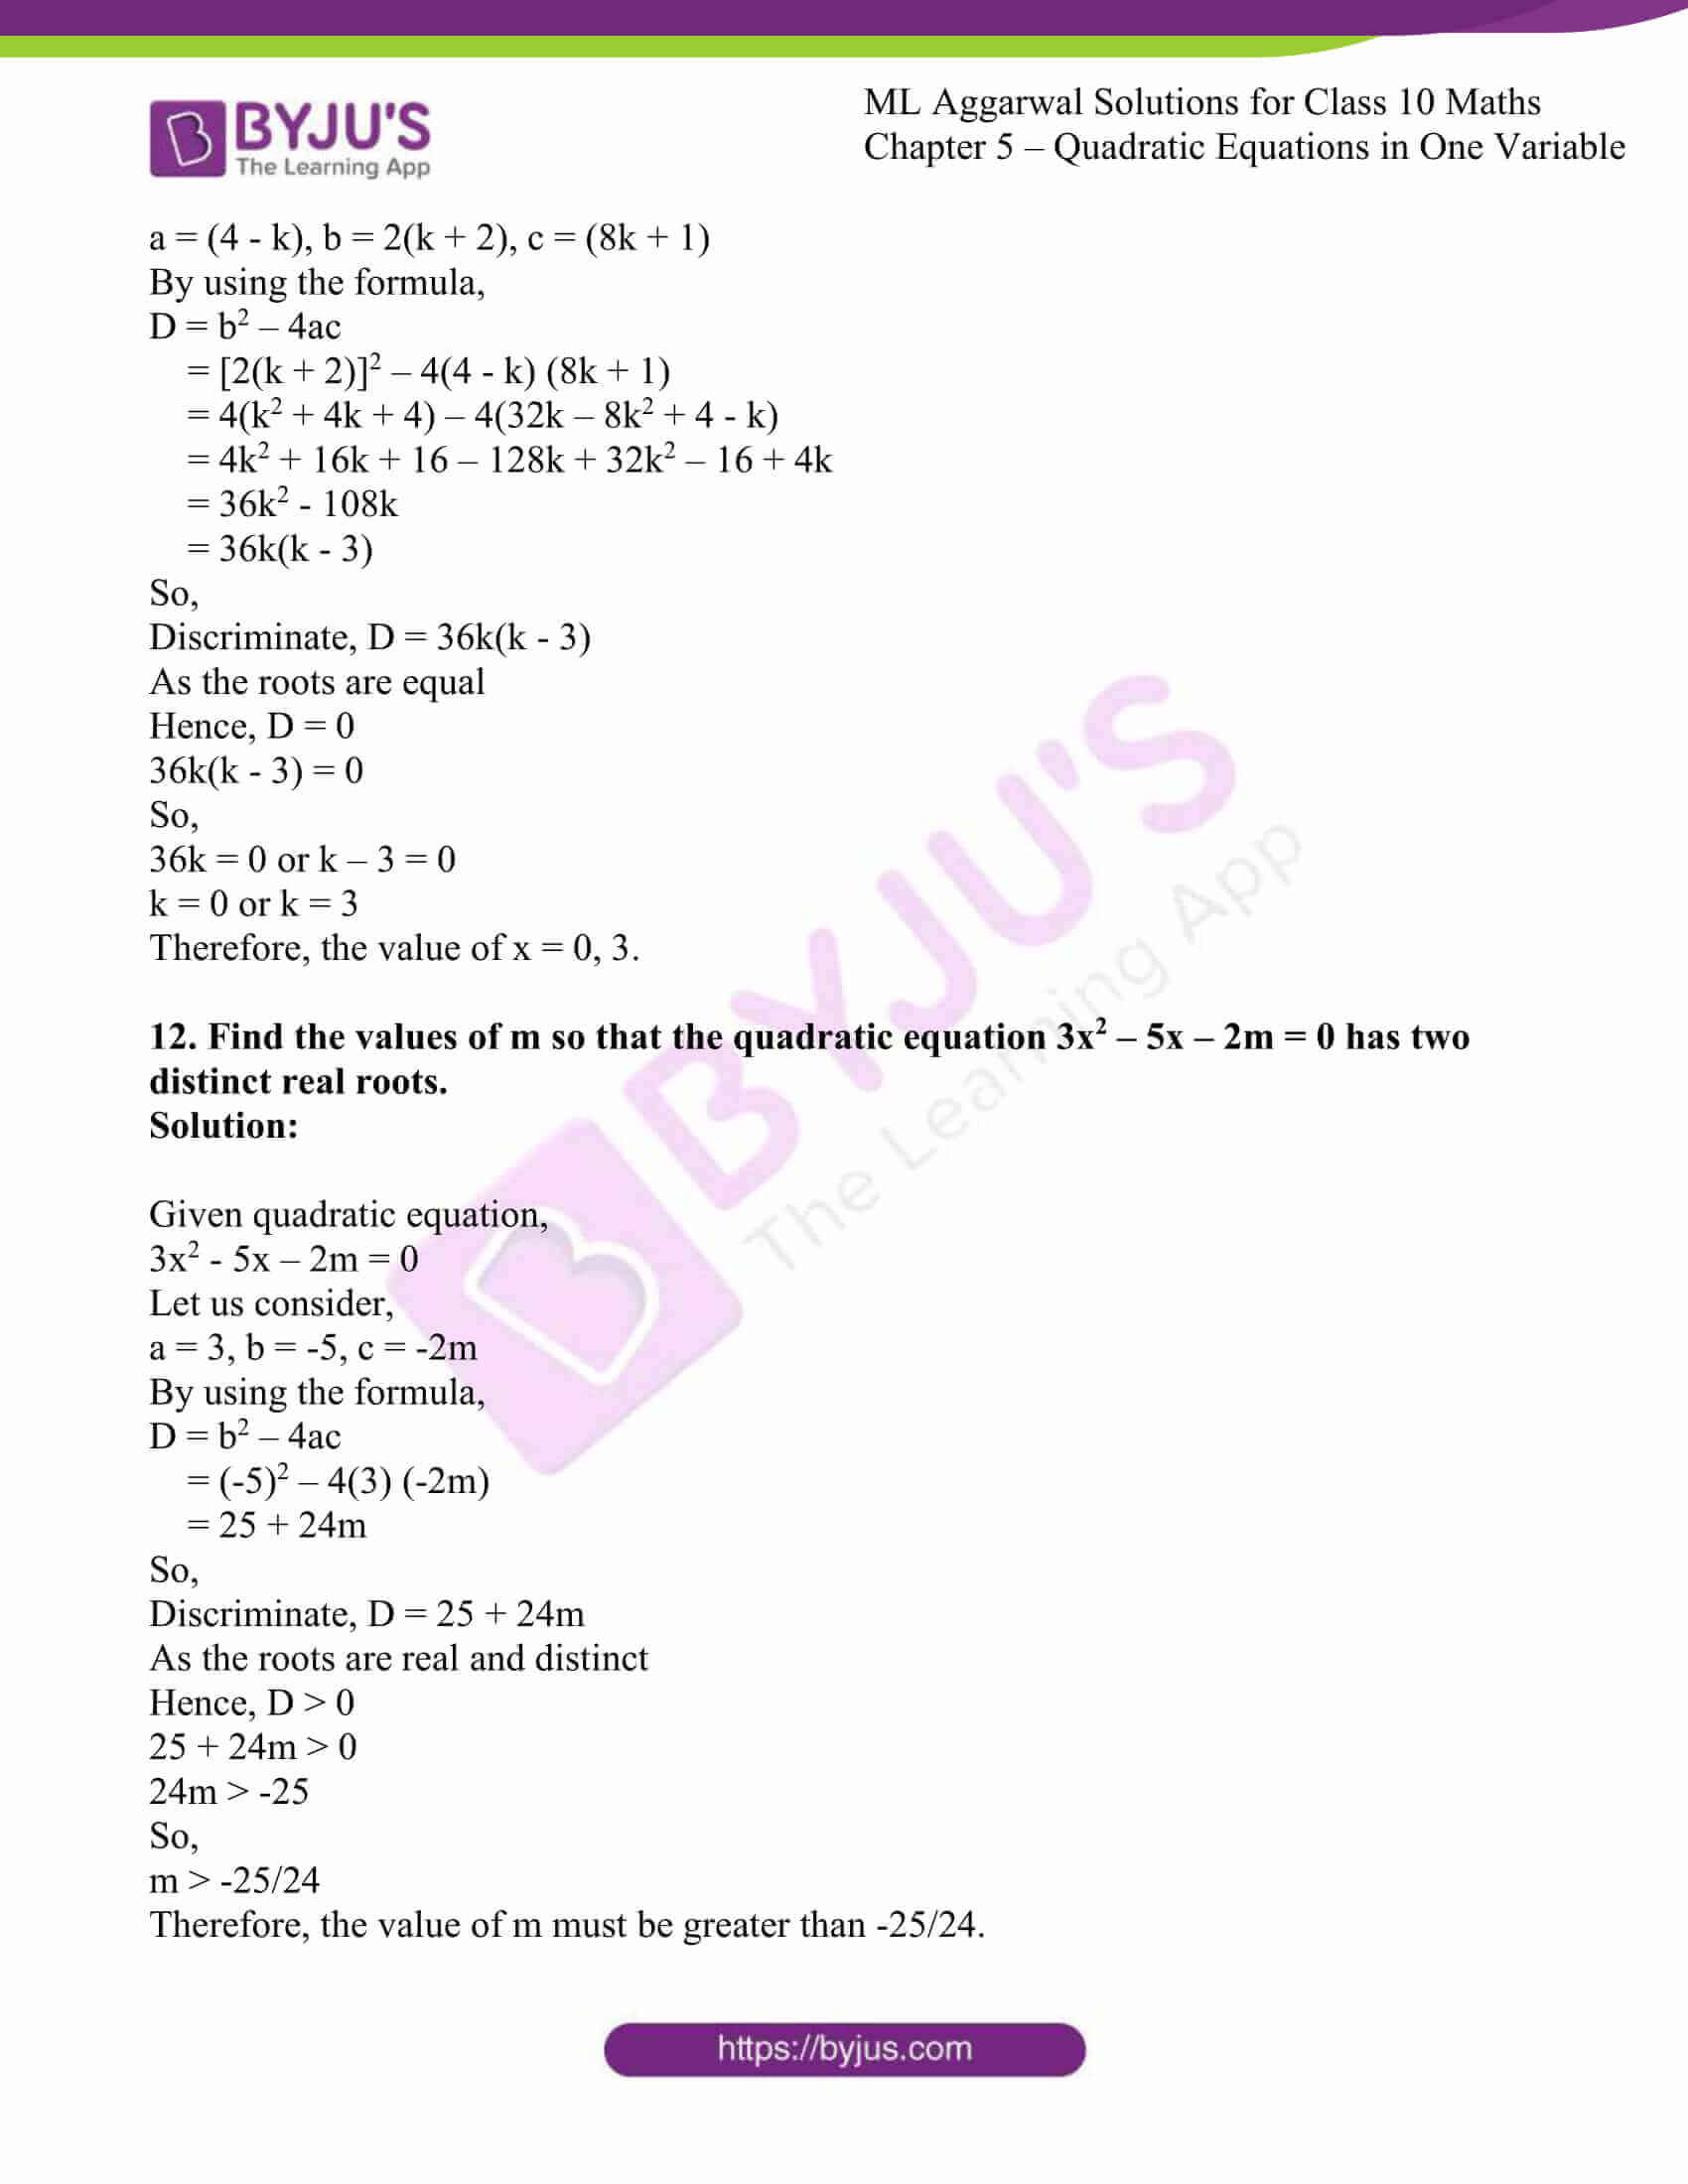 ml aggarwal solutions class 10 maths chapter 5 81